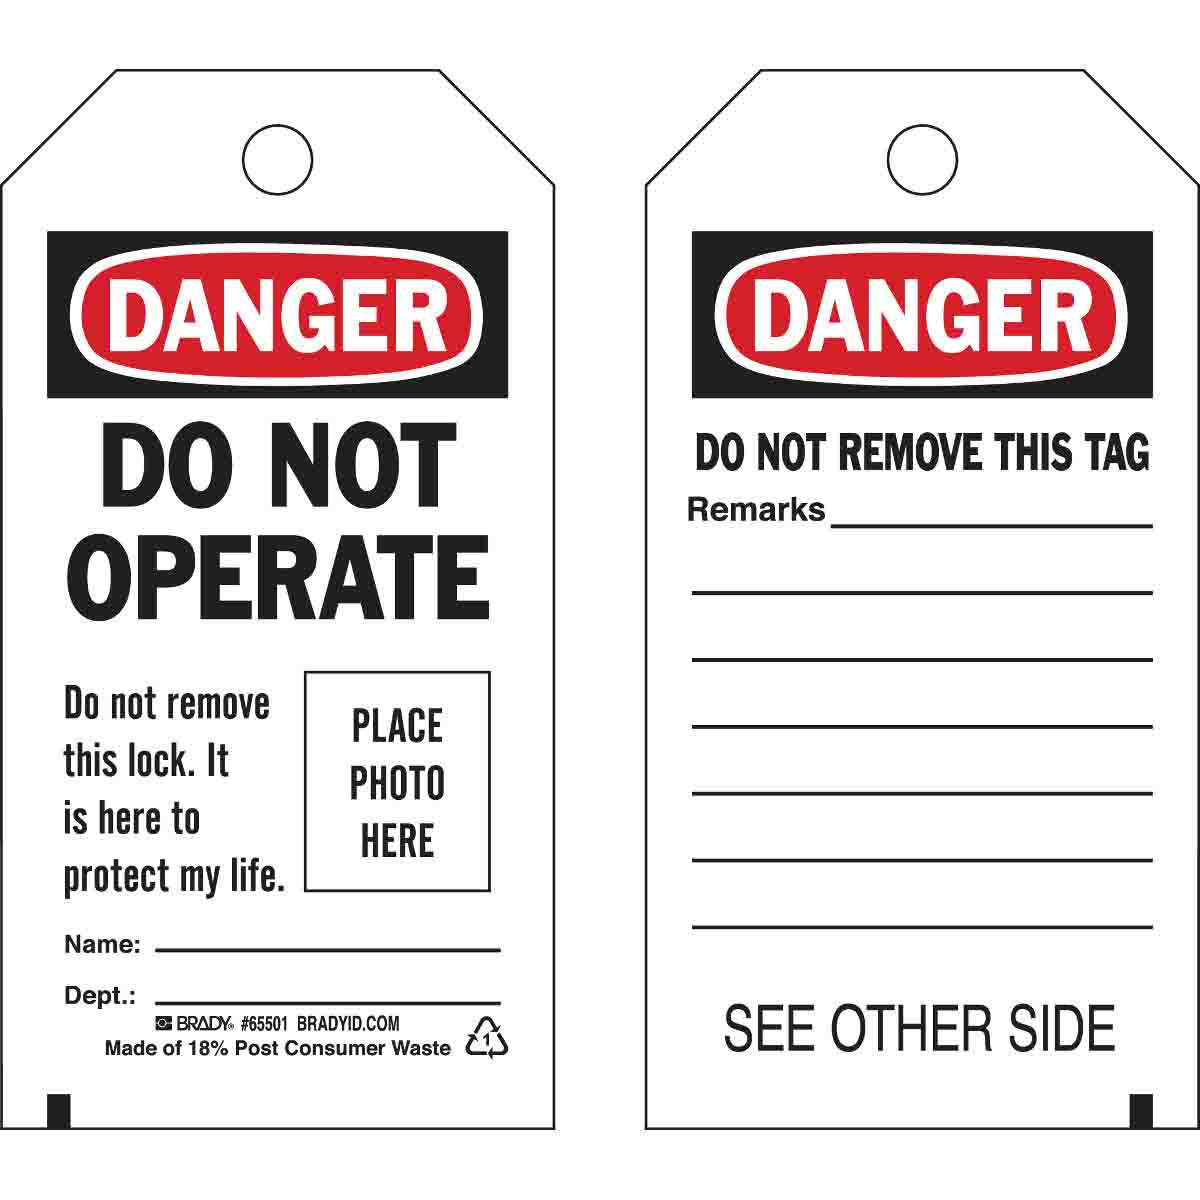 Do Not Operate Tags with photographs